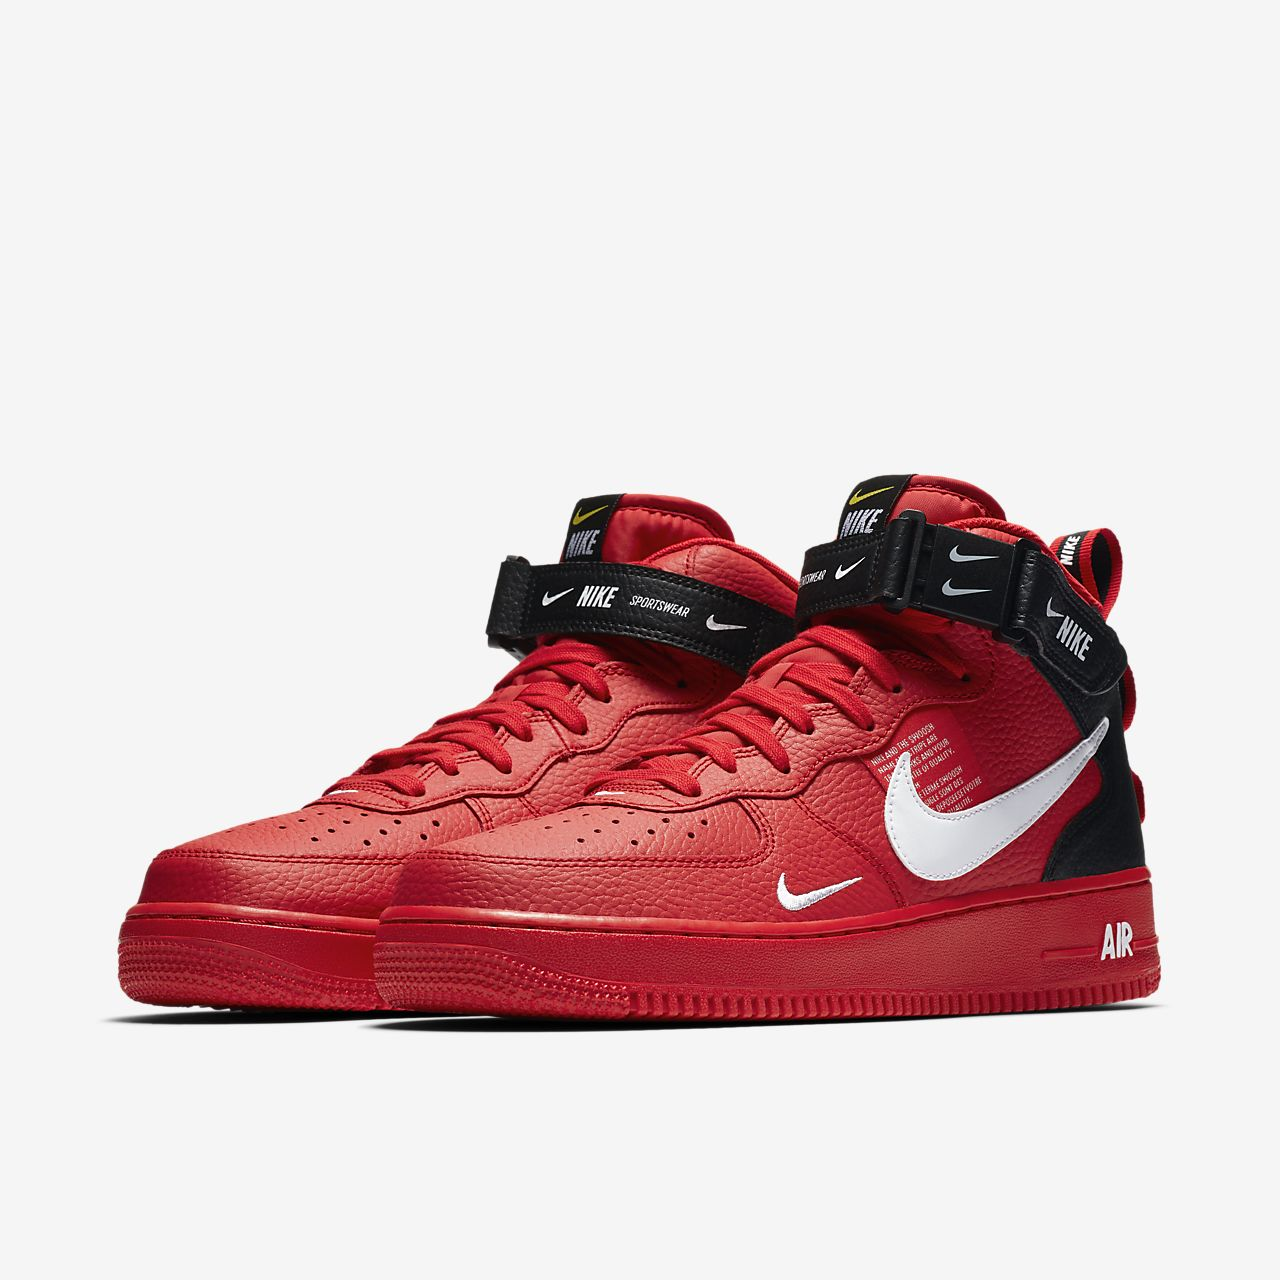 low priced 9c1d6 70d1f ... Scarpa Nike Air Force 1 07 Mid LV8 - Uomo